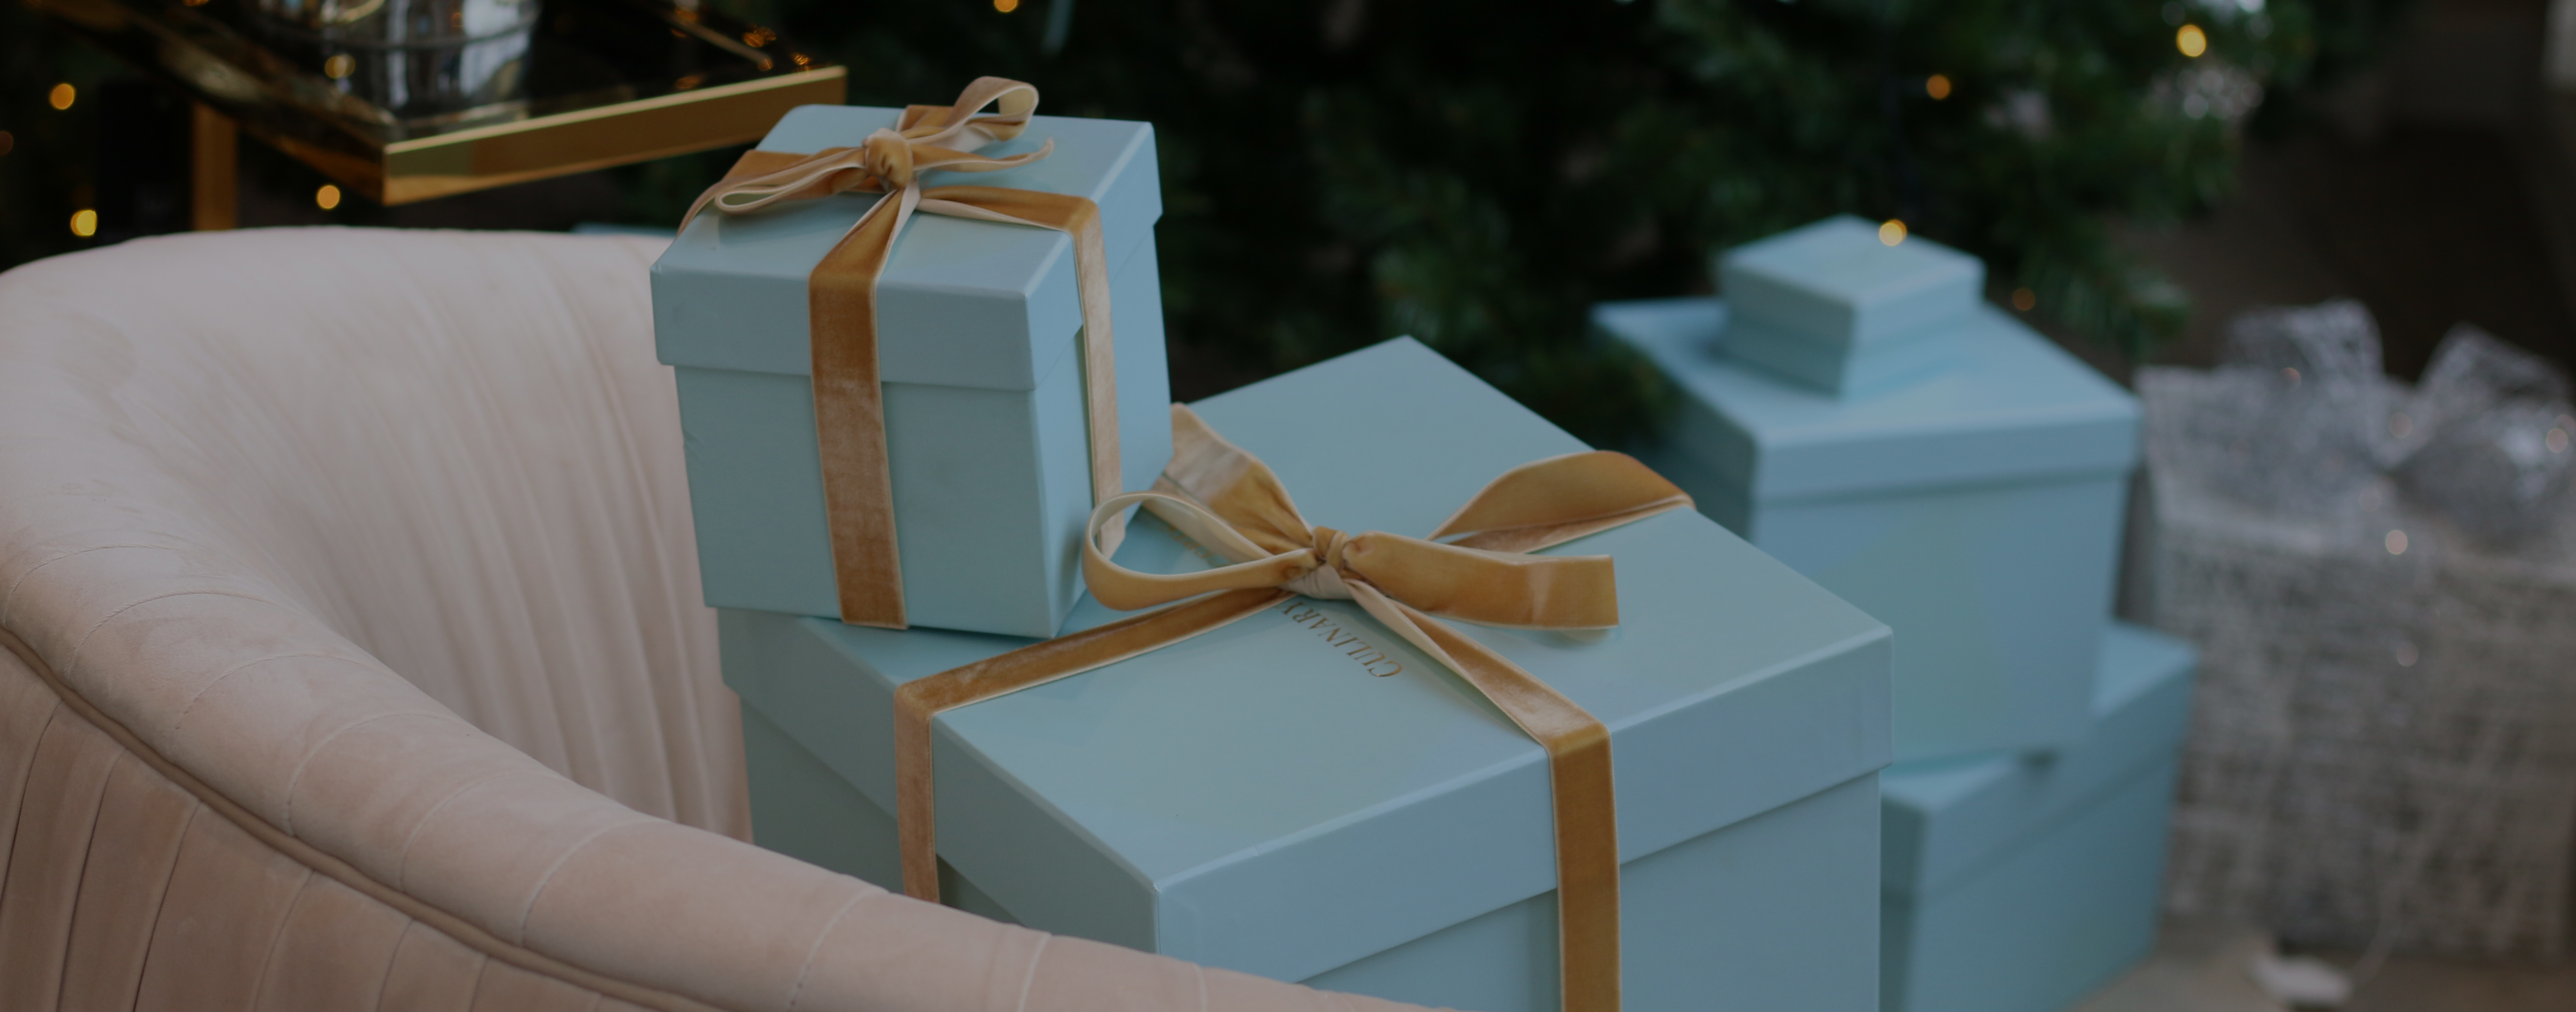 Blue Christmas boxes with gold ribbon